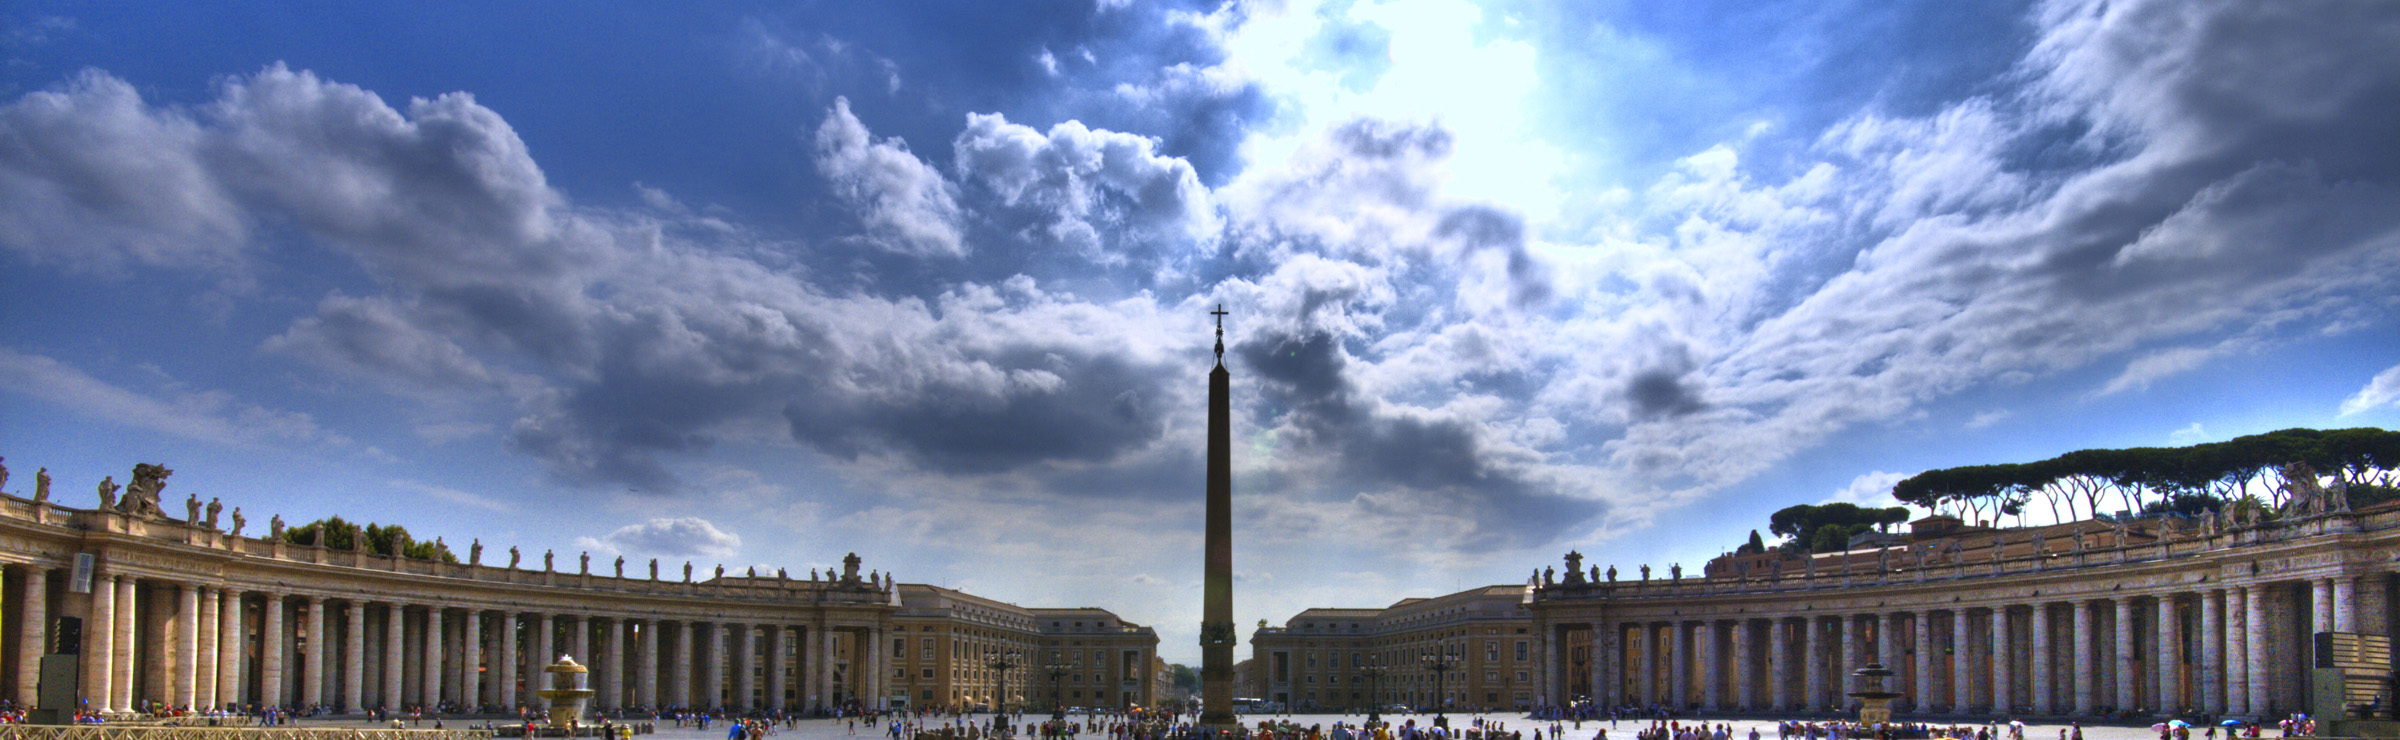 St Peter's Square, Vatican City - by vgm8383